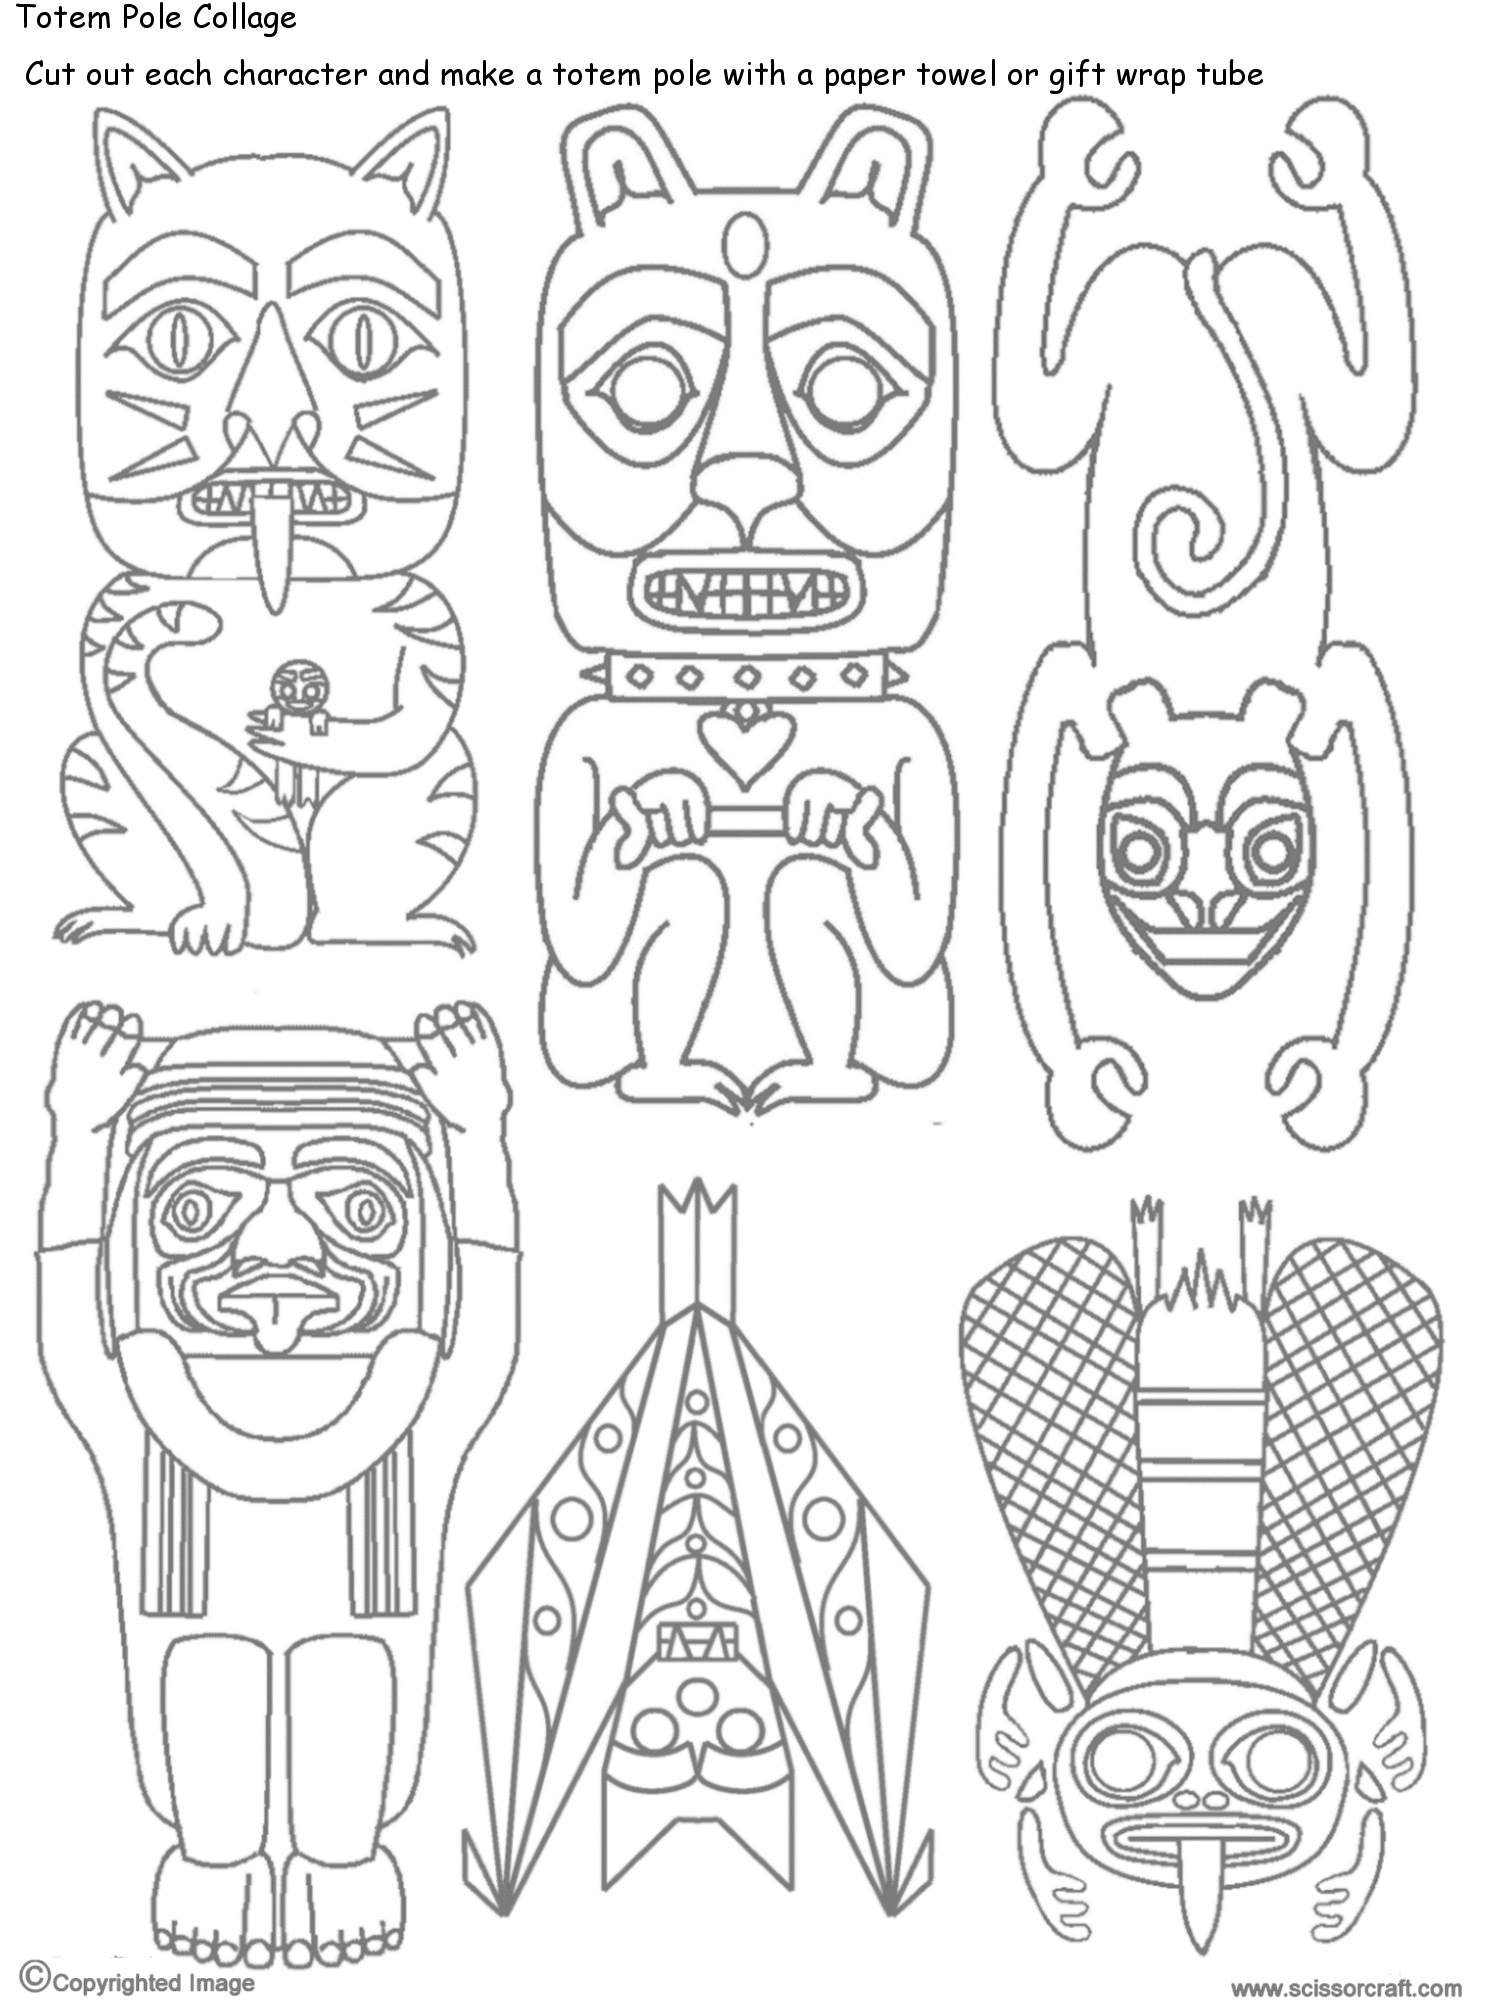 Mar 25 How To Draw A Totem Pole With Images